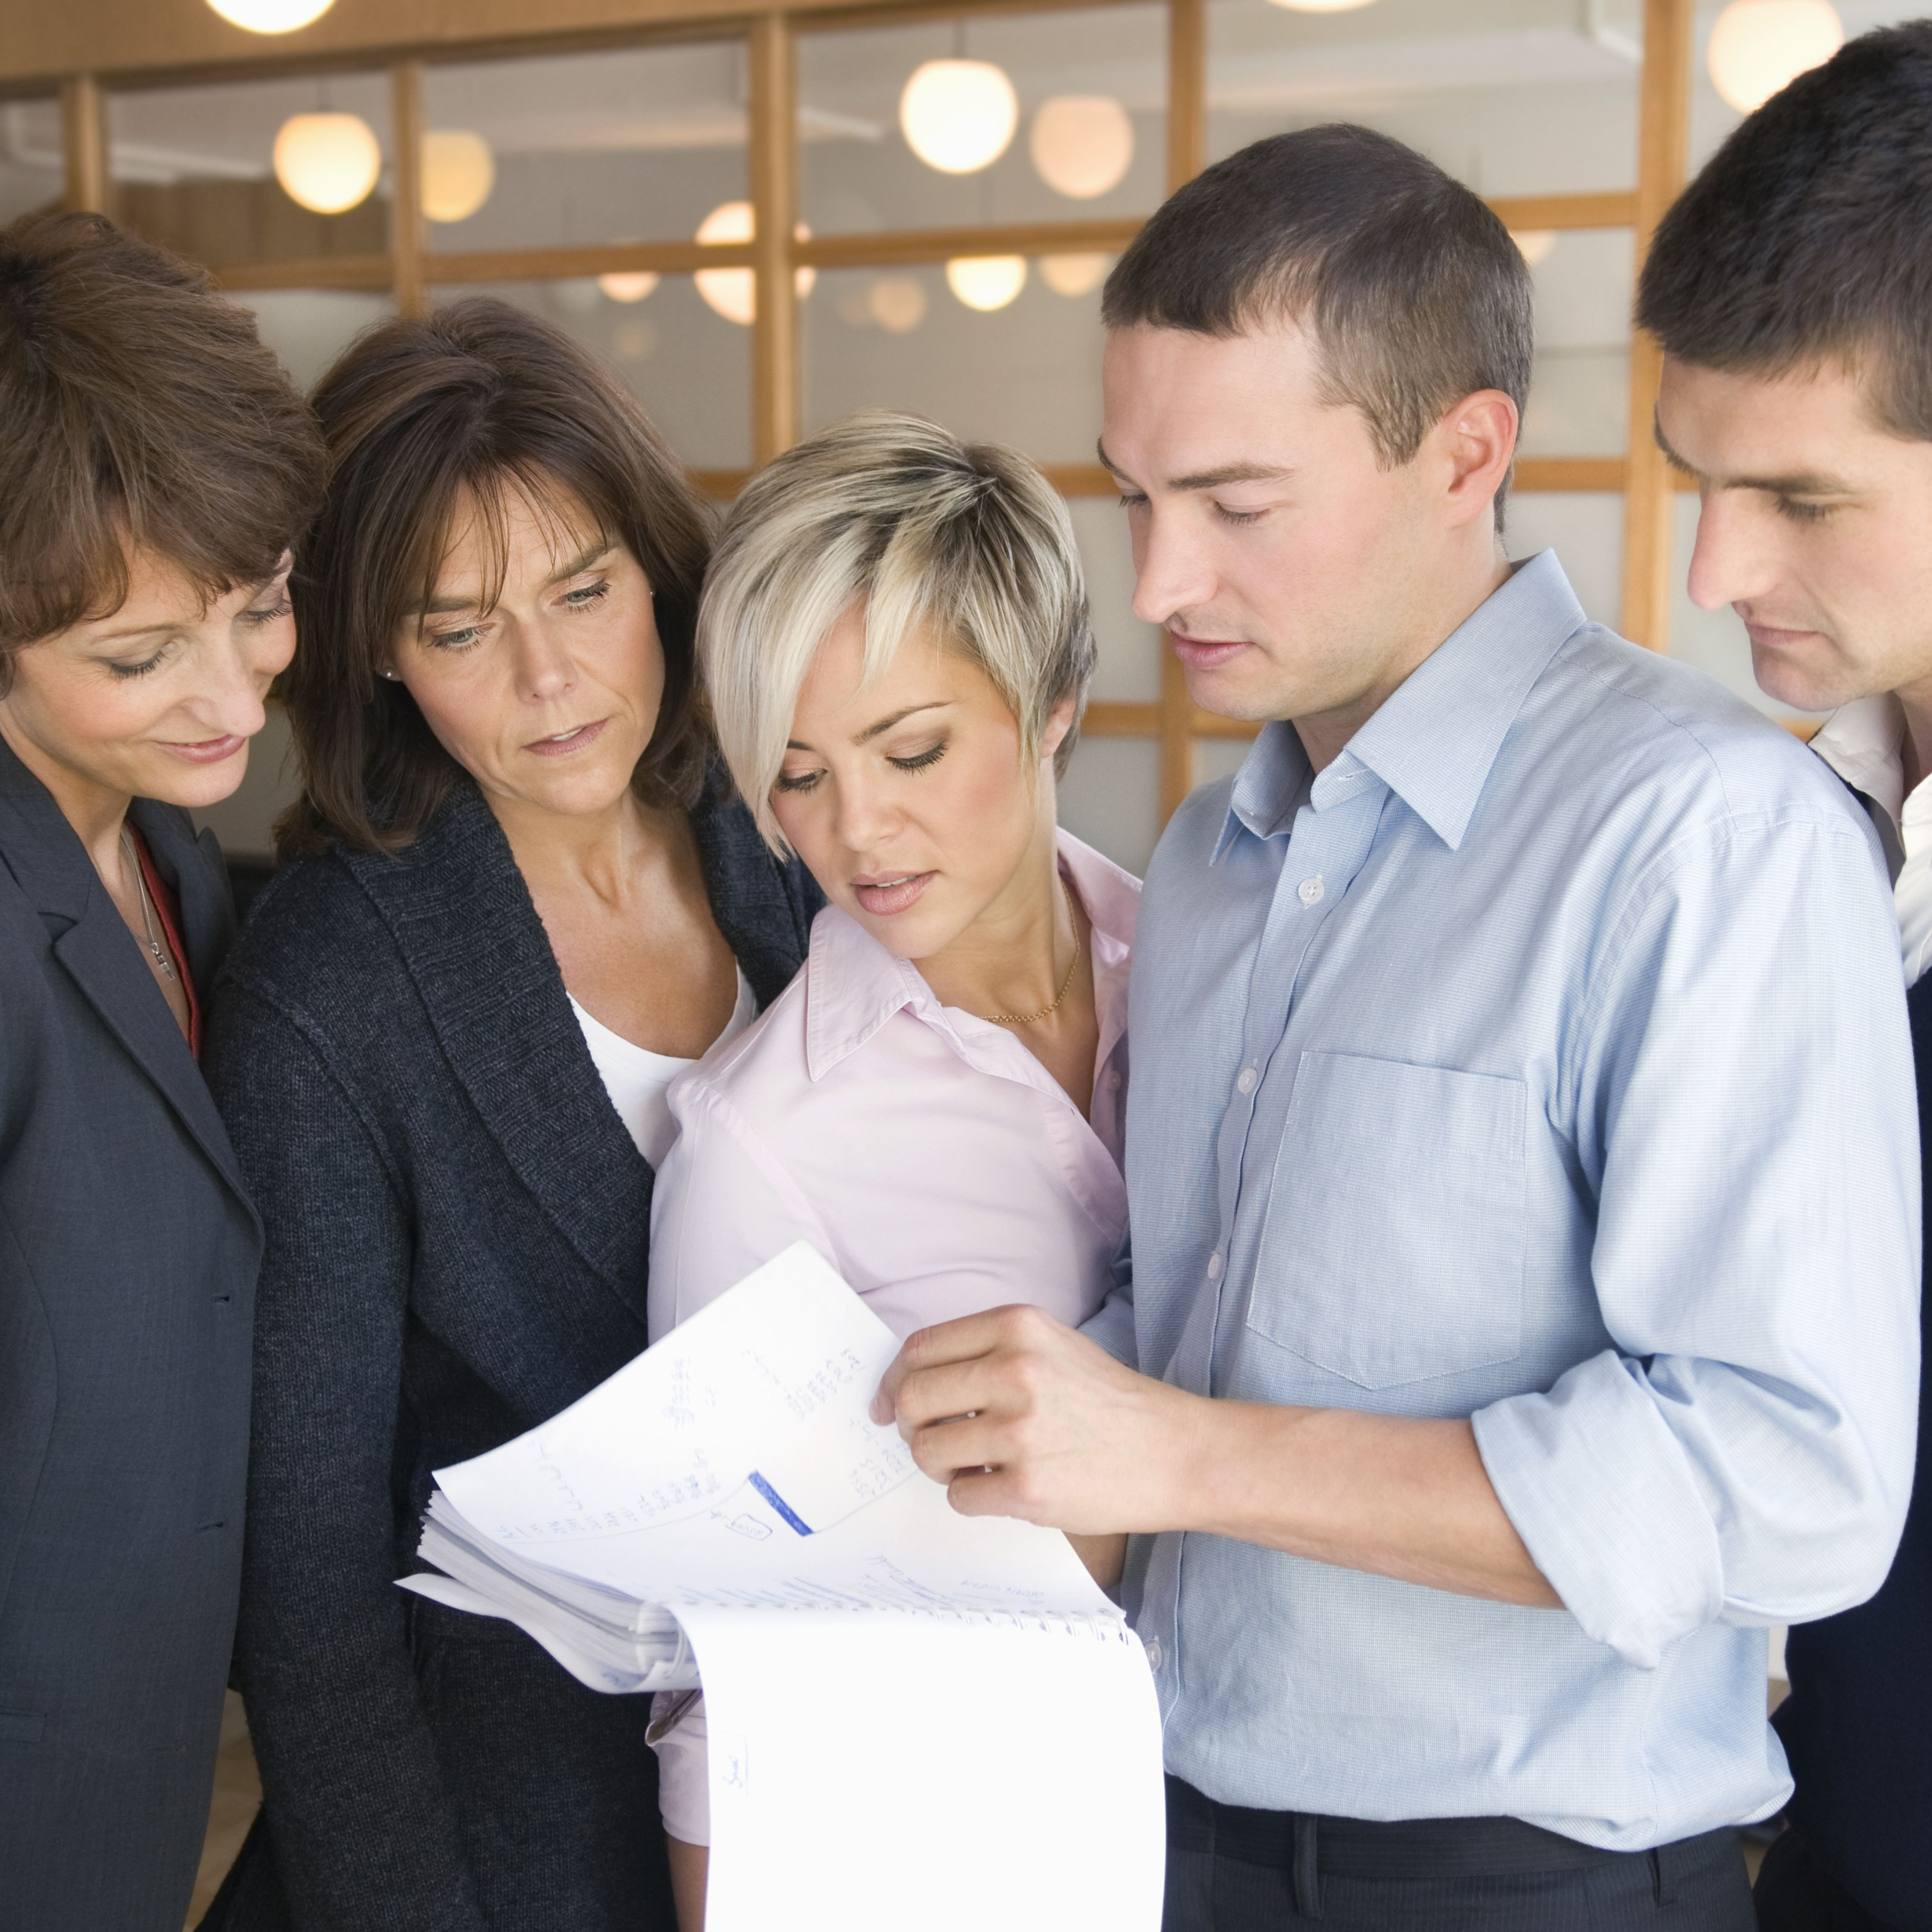 Inspirational Quotes for Business About Team Building